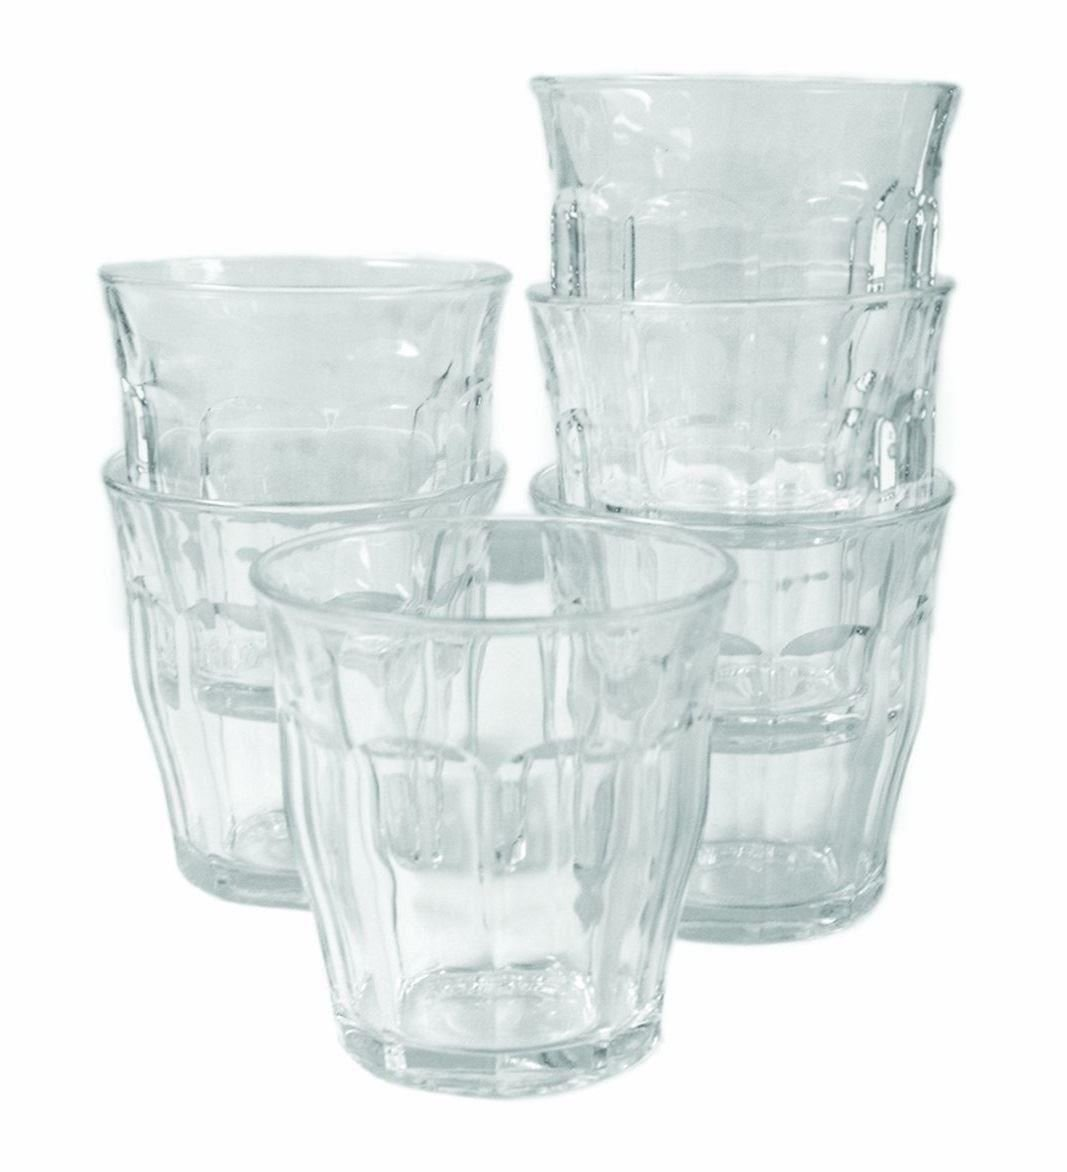 Duralex 16cl Picardie Tumbler Drinking Glasses Pack of 6: Amazon.co.uk:  Kitchen & Home